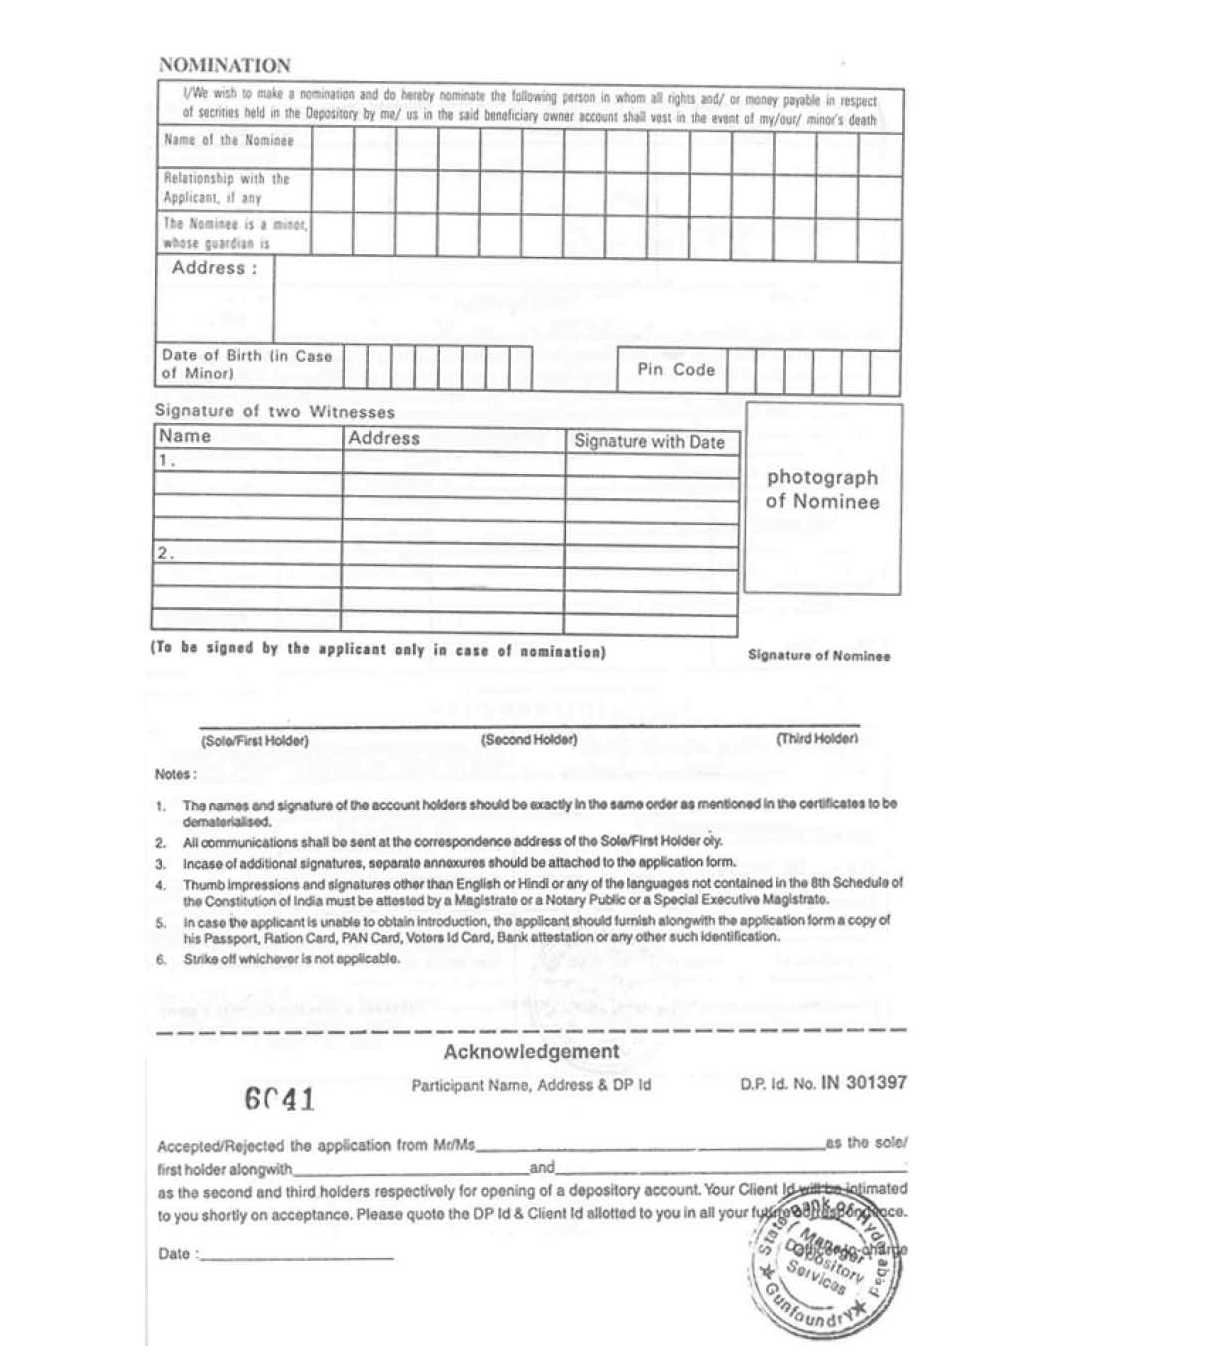 State bank of hyderabad application form for opening of demat account